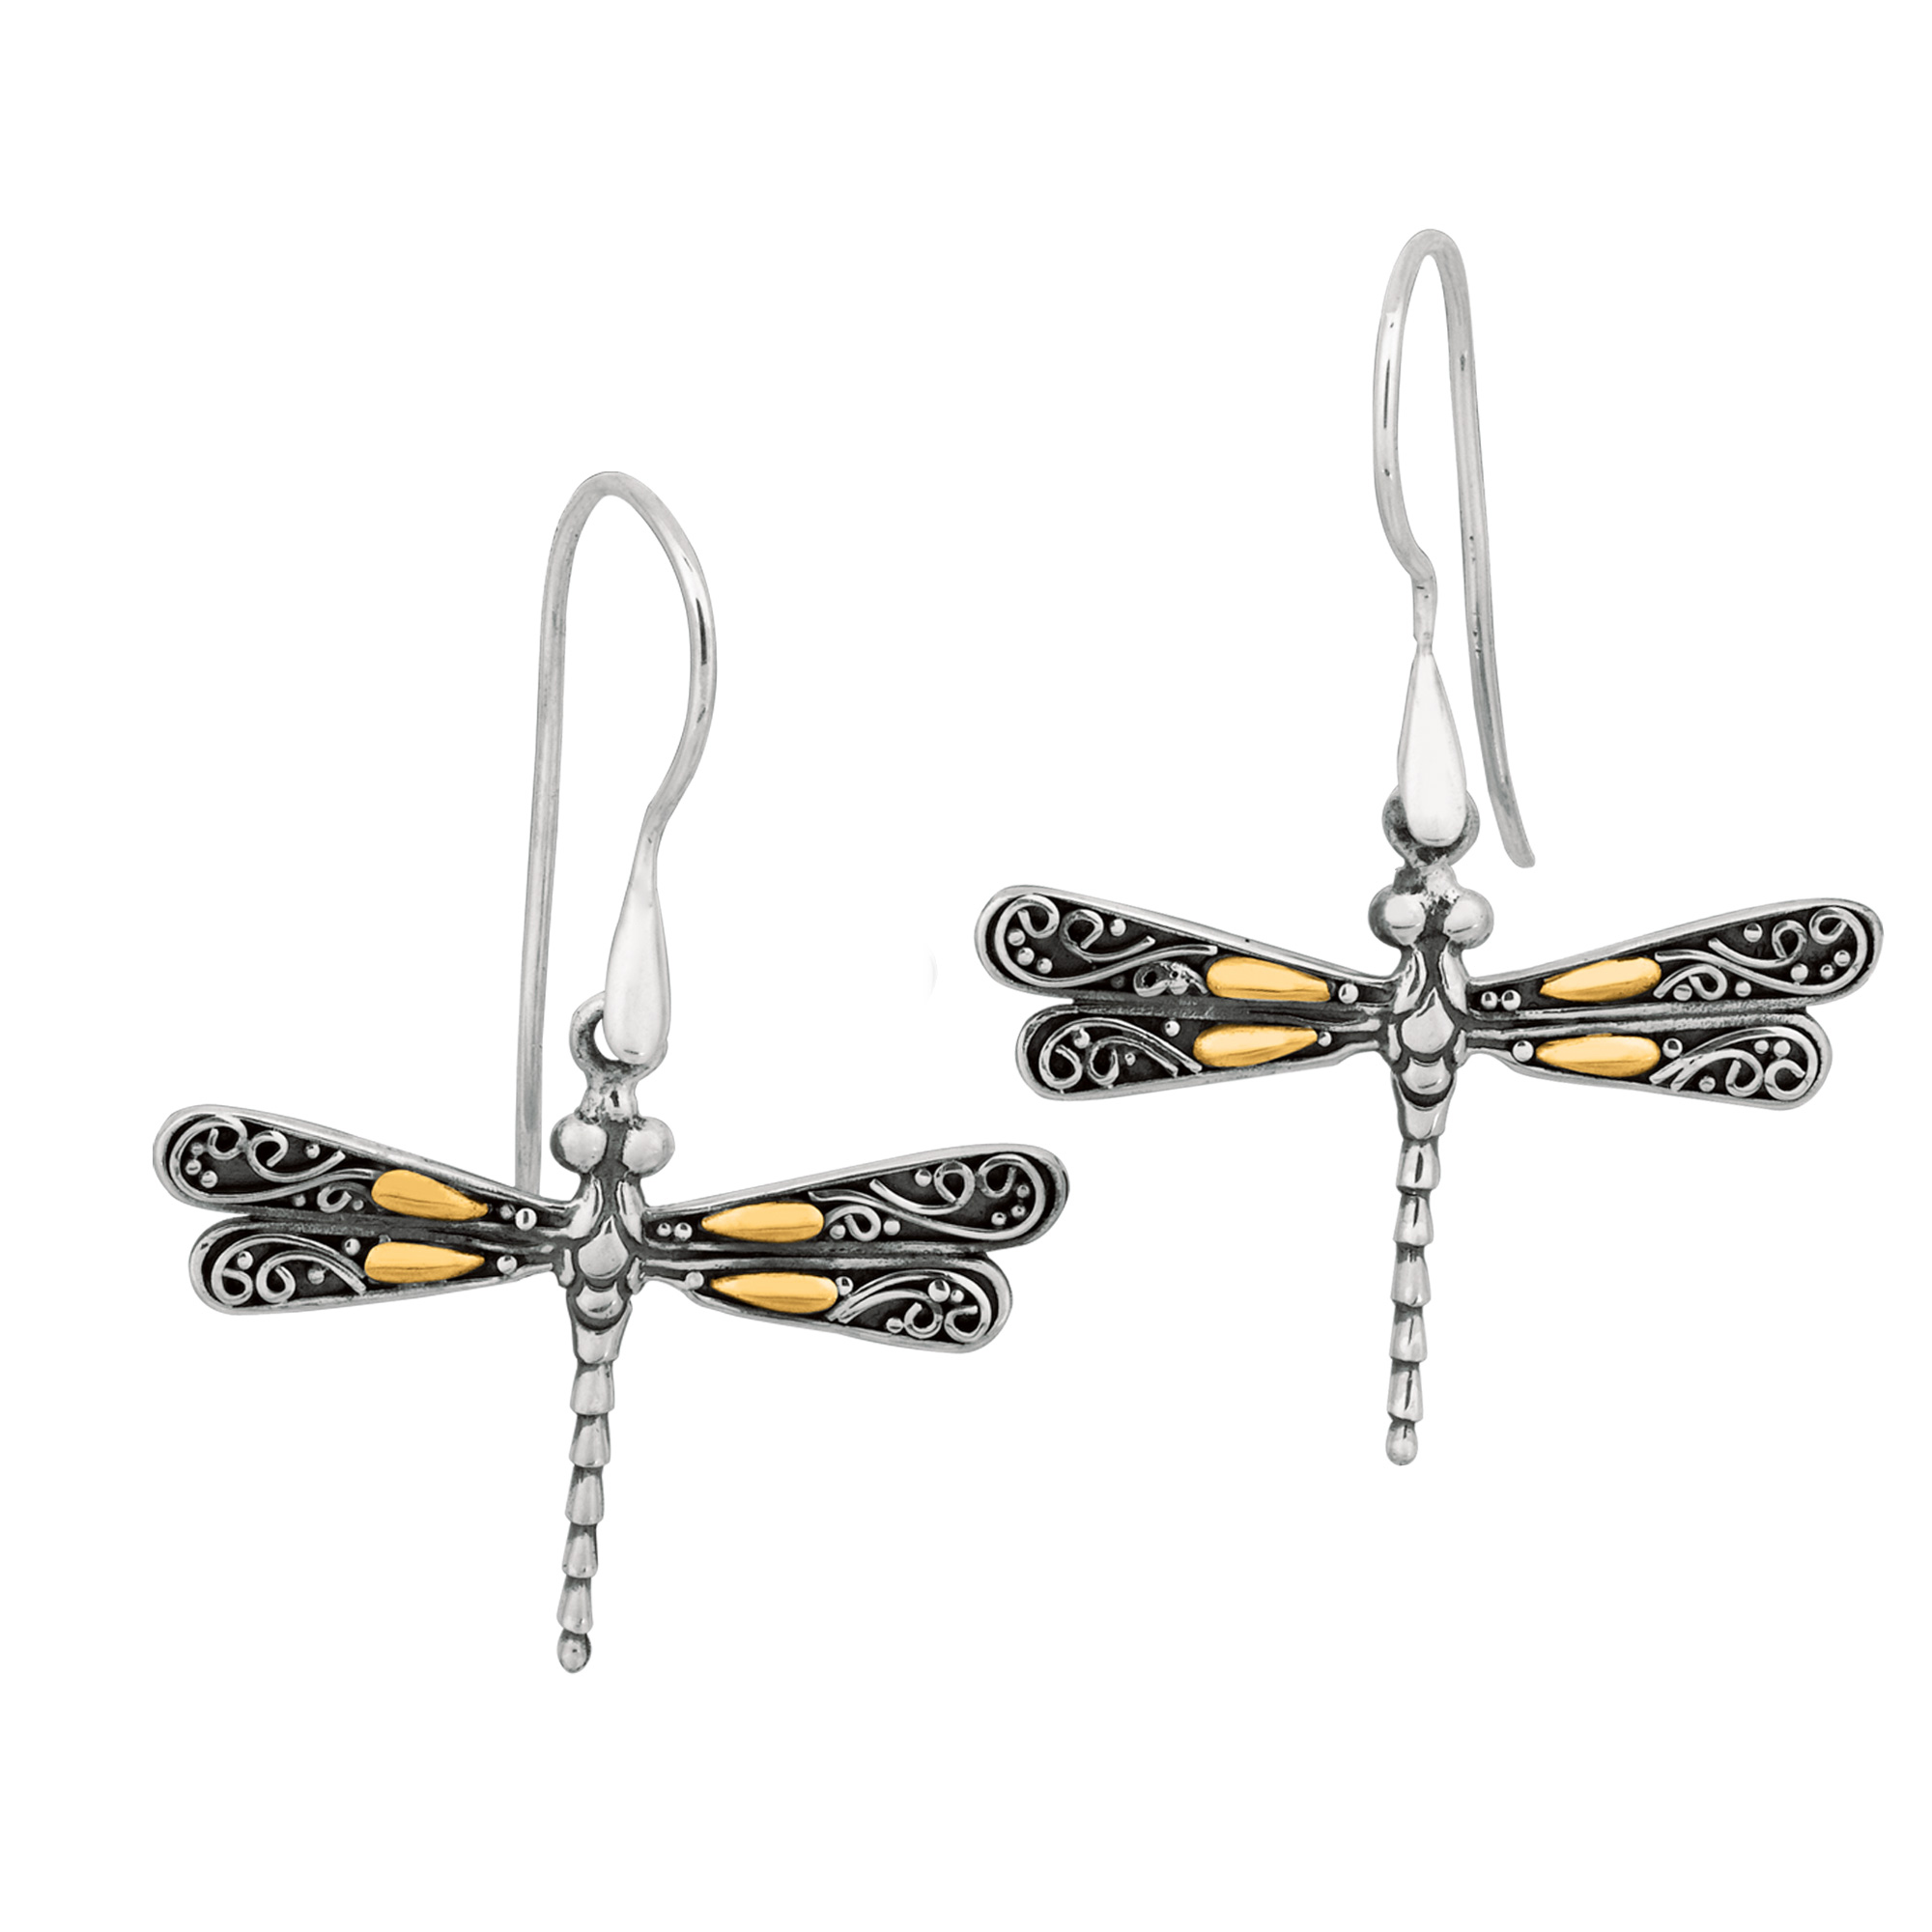 18K Gold And Sterling Silver Dragonfly French Wire Drop Earrings Introduced in 2005, the line of sterling silver, gold and precious stone jewelry has rapidly become an important presentation in jewelry stores across the country. Literally born into the jewelry world, designer Phillip Gabriel Maroof realized his artistic talent and design sensibility at an early age. His skills and vision were intensified when he was a student in Florence and studied the great Renaissance masters. From that point on, his emotions and sentimental attachment led him to create jewelry inspired by his travels. Today, jewelry is not only rich in its heritage, but beautiful and wearable by everyone. Every piece tells a story, and comes from the heart.